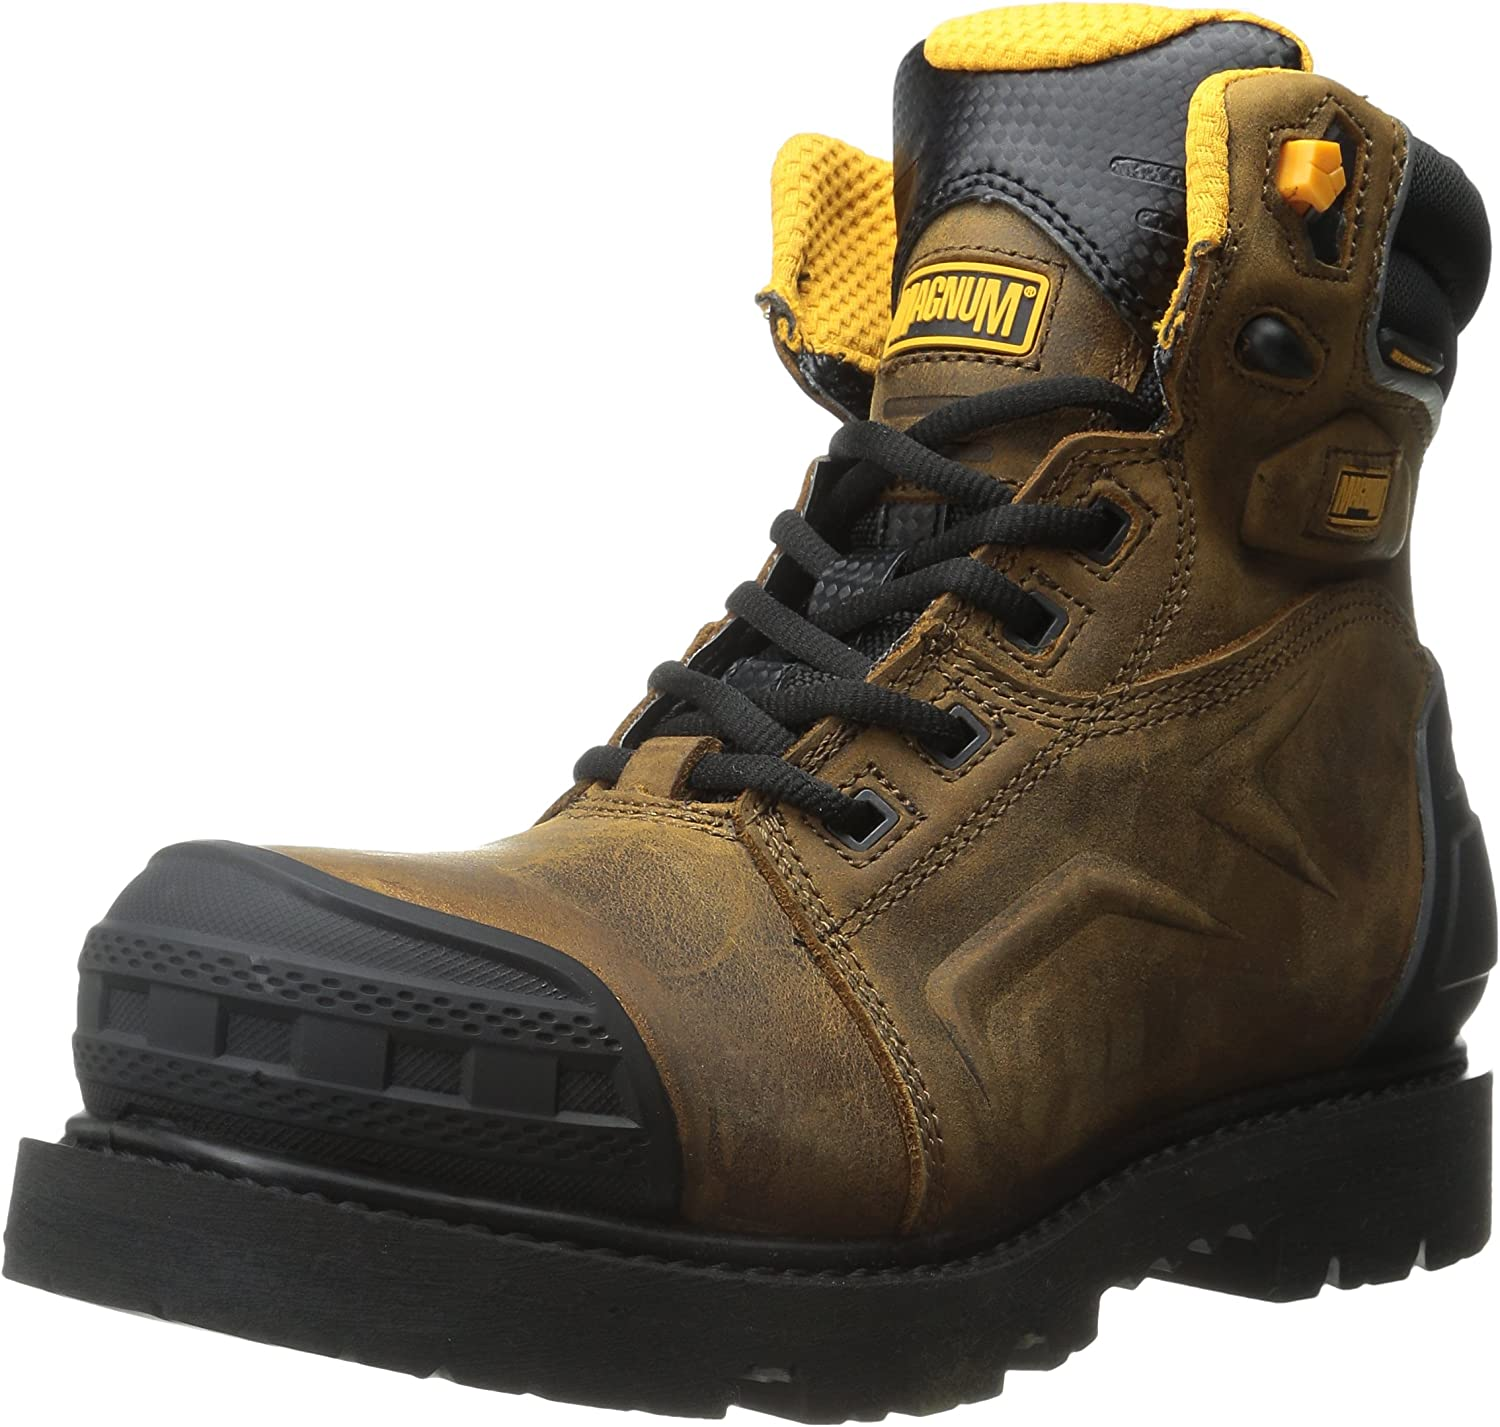 Magnum Men's Flint 6.0 Z-Flex Composite Toe Waterproof Work Boot